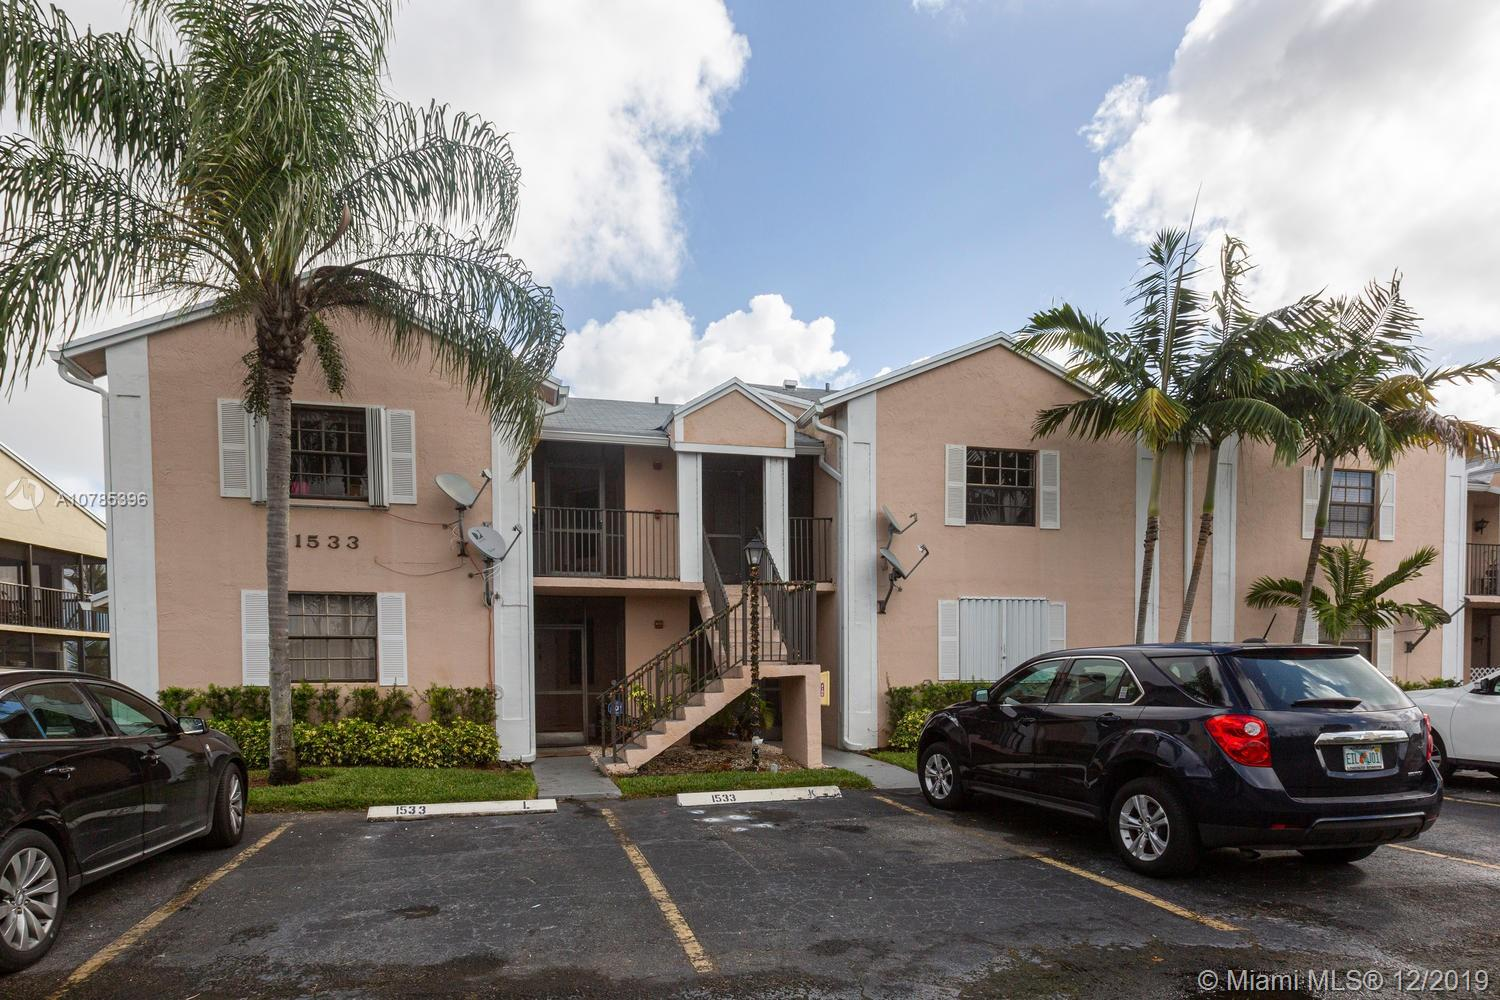 1533 S Liberty Ave #I, Homestead, FL 33034 - Homestead, FL real estate listing